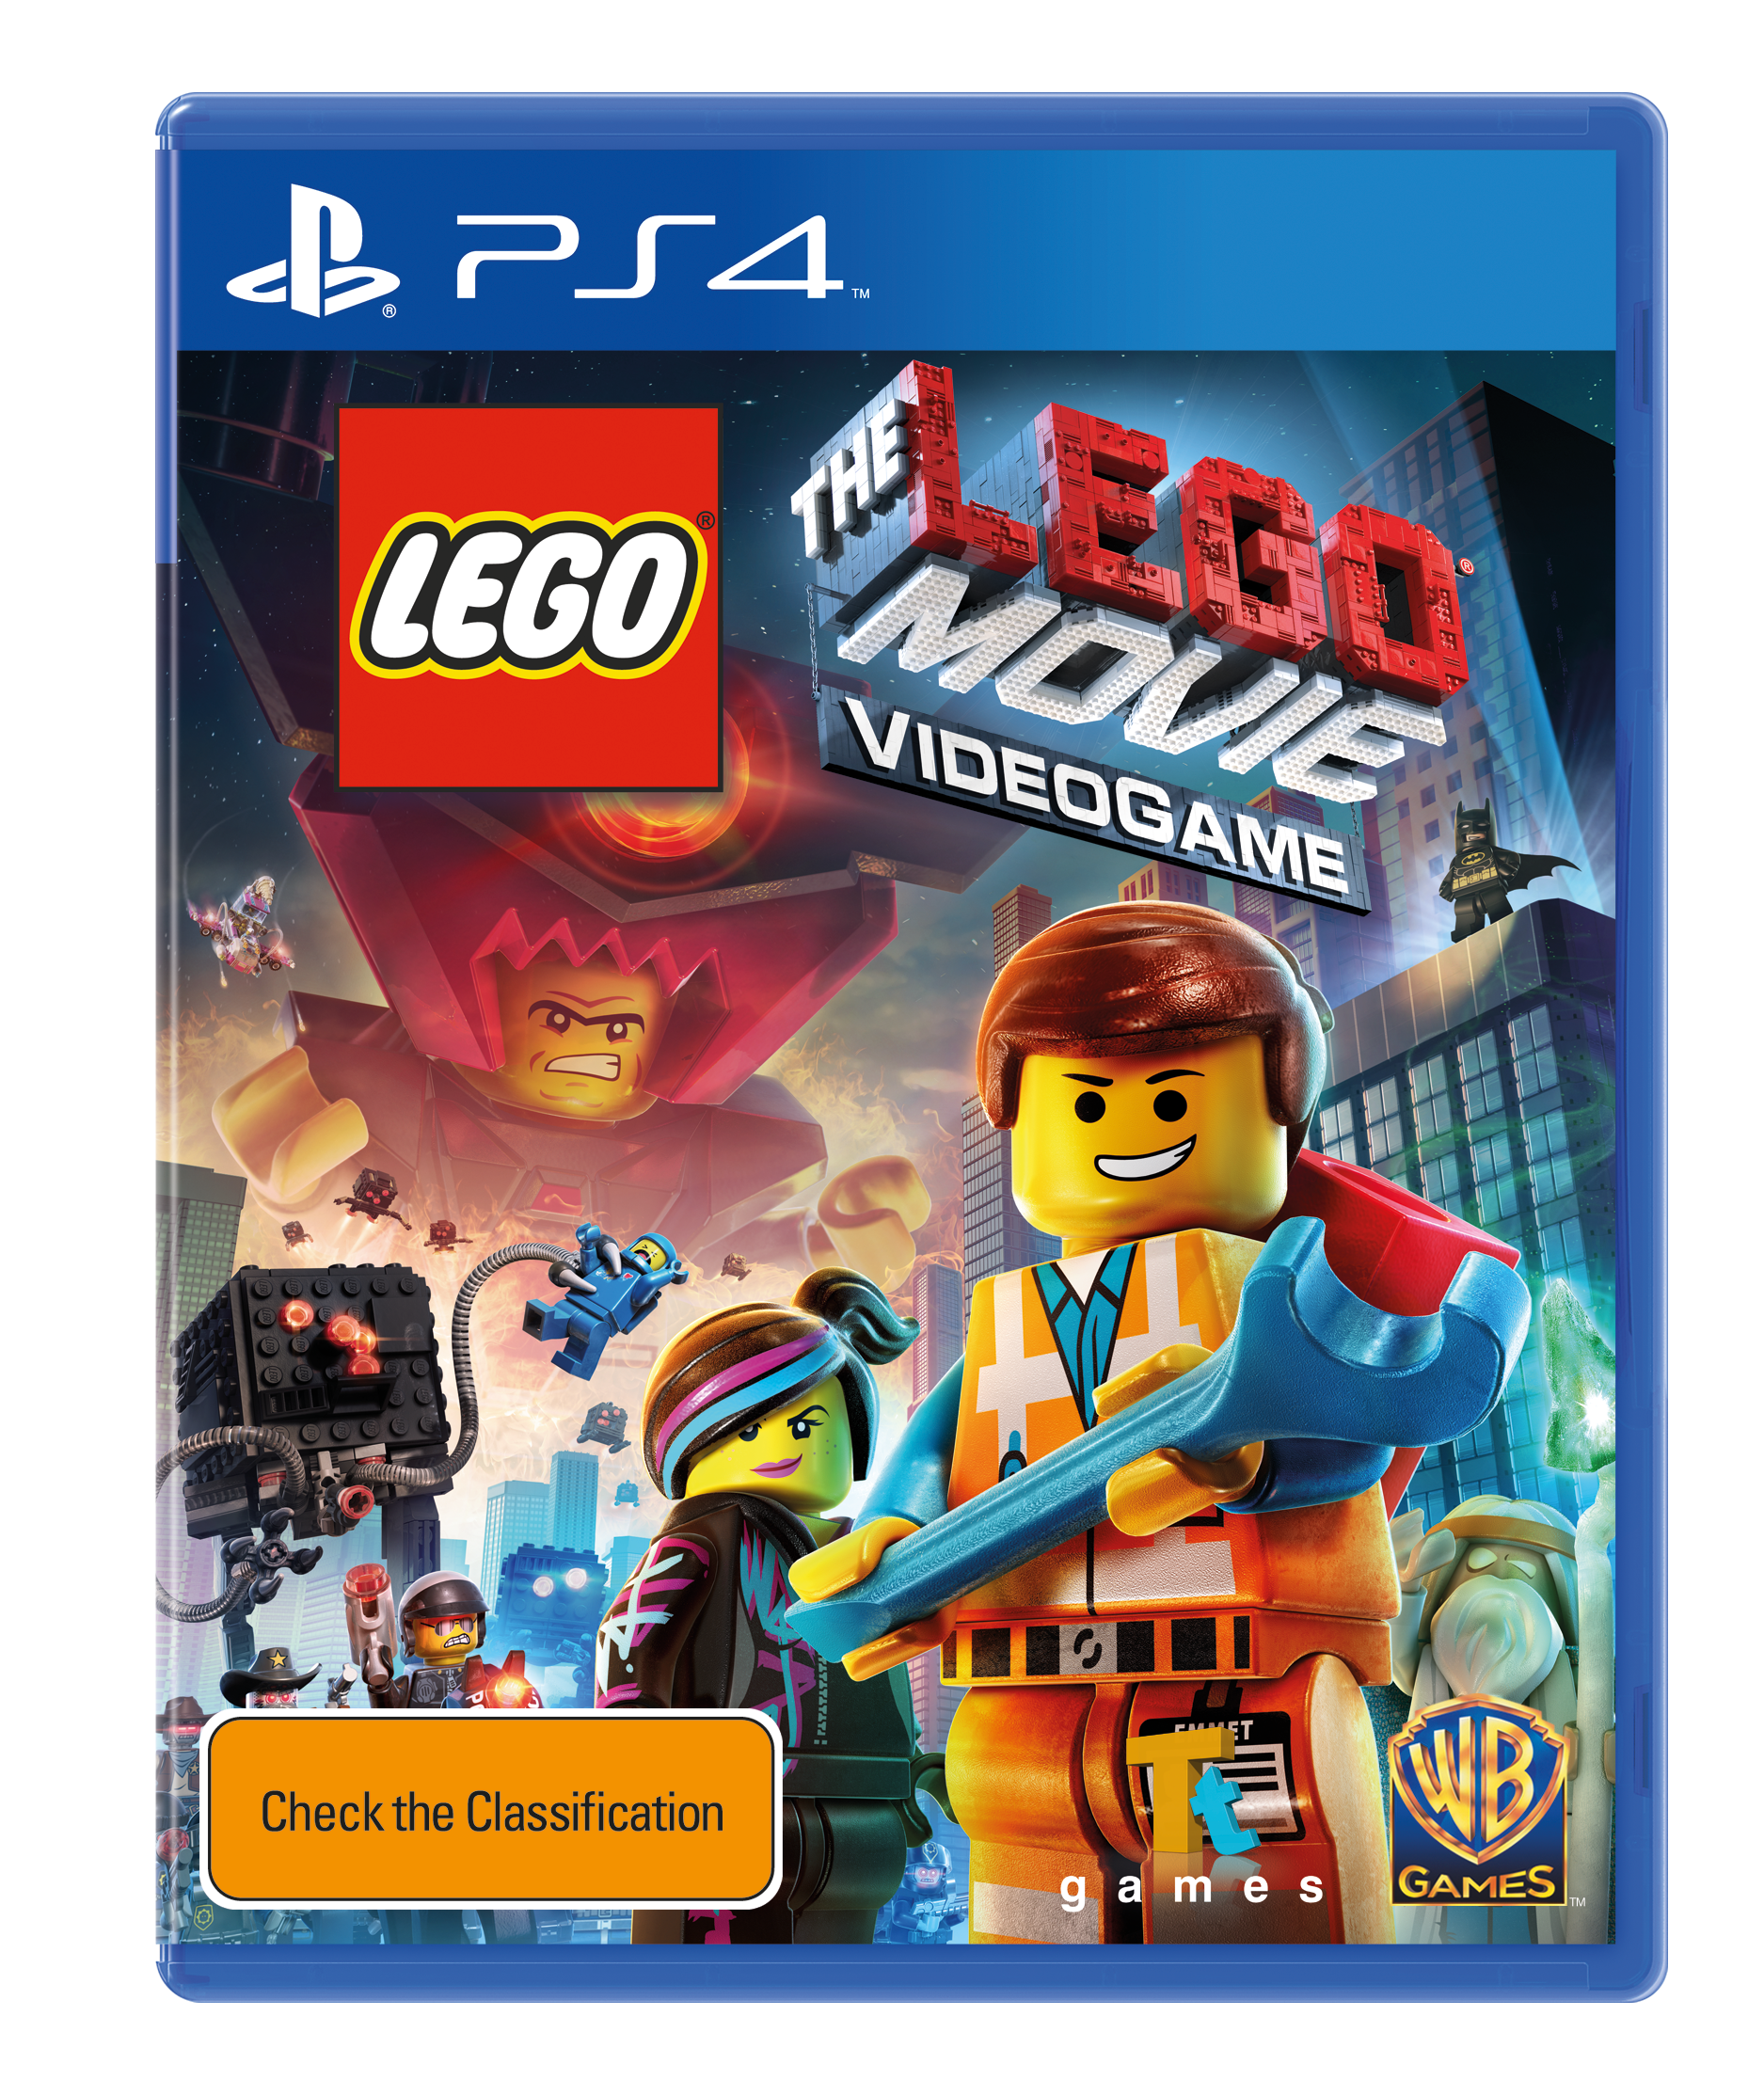 Ps4 games png. Image lego movie ps